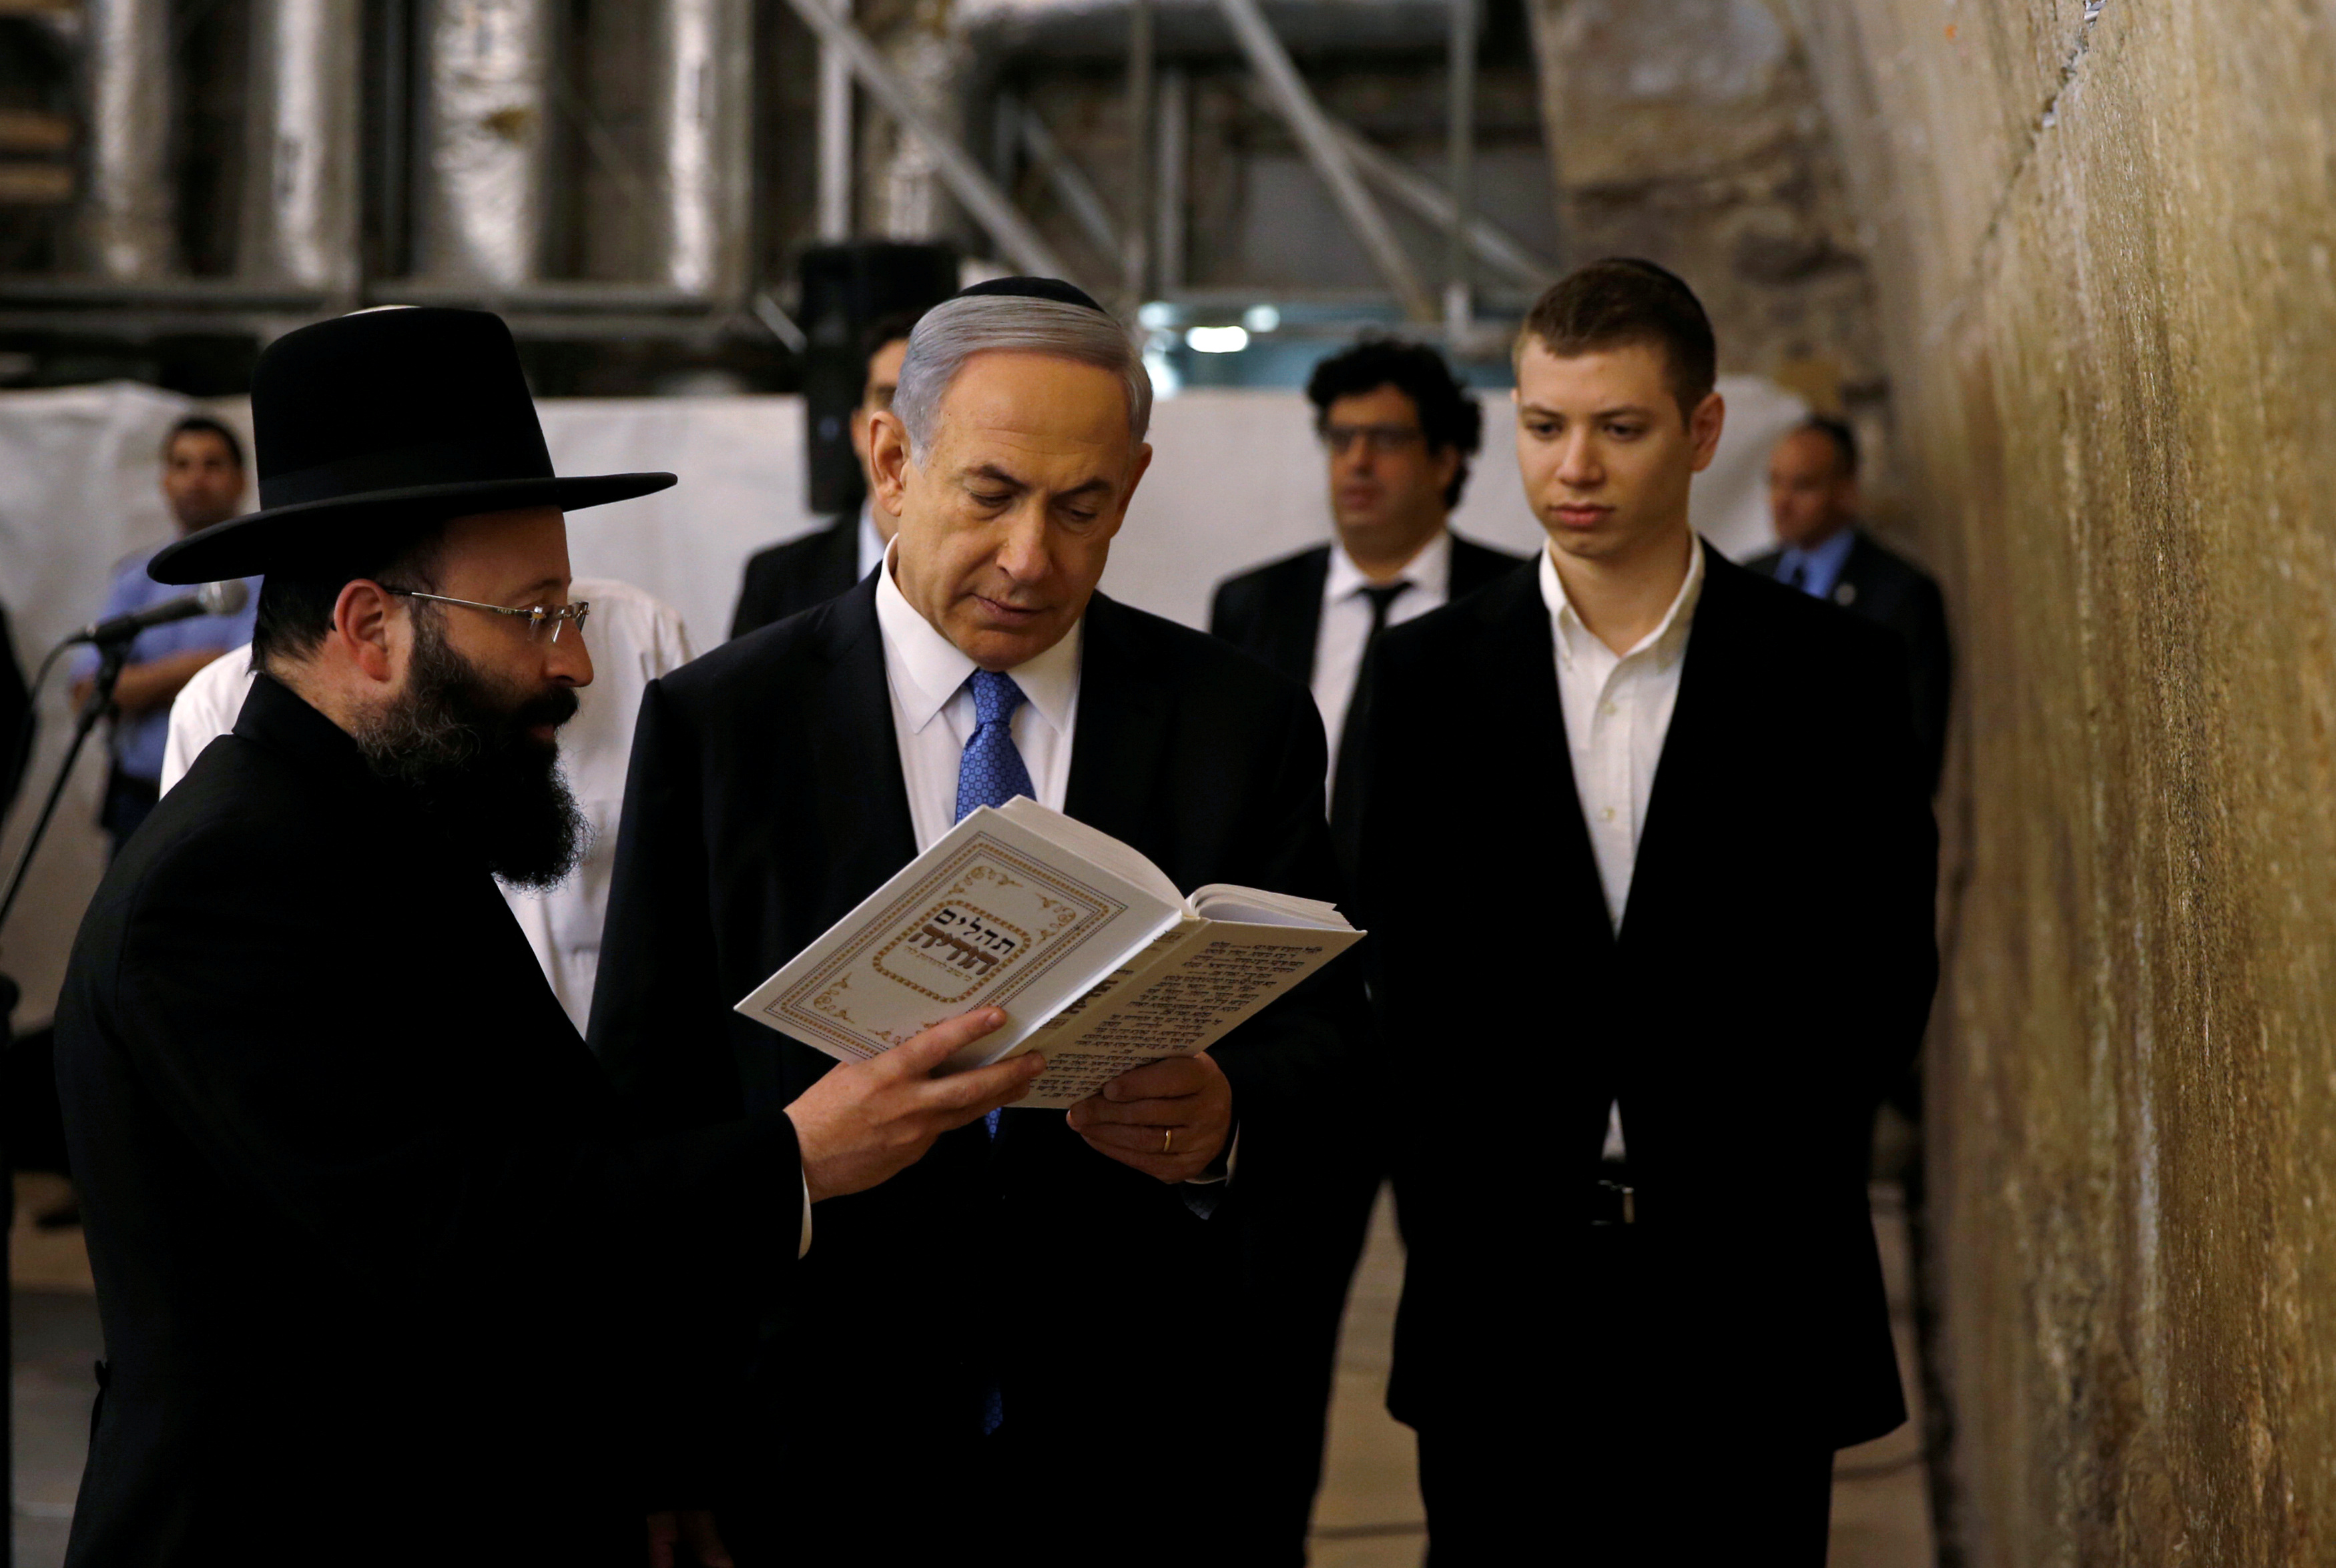 FILE PHOTO: Israel's Prime Minister Benjamin Netanyahu (C) reads a prayer with Western Wall Rabbi Shmuel Rabinowitz (L) as his son Yair (R) stands next to him, at the Western Wall, Judaism's holiest prayer site, in Jerusalem's Old City March 18, 2015...